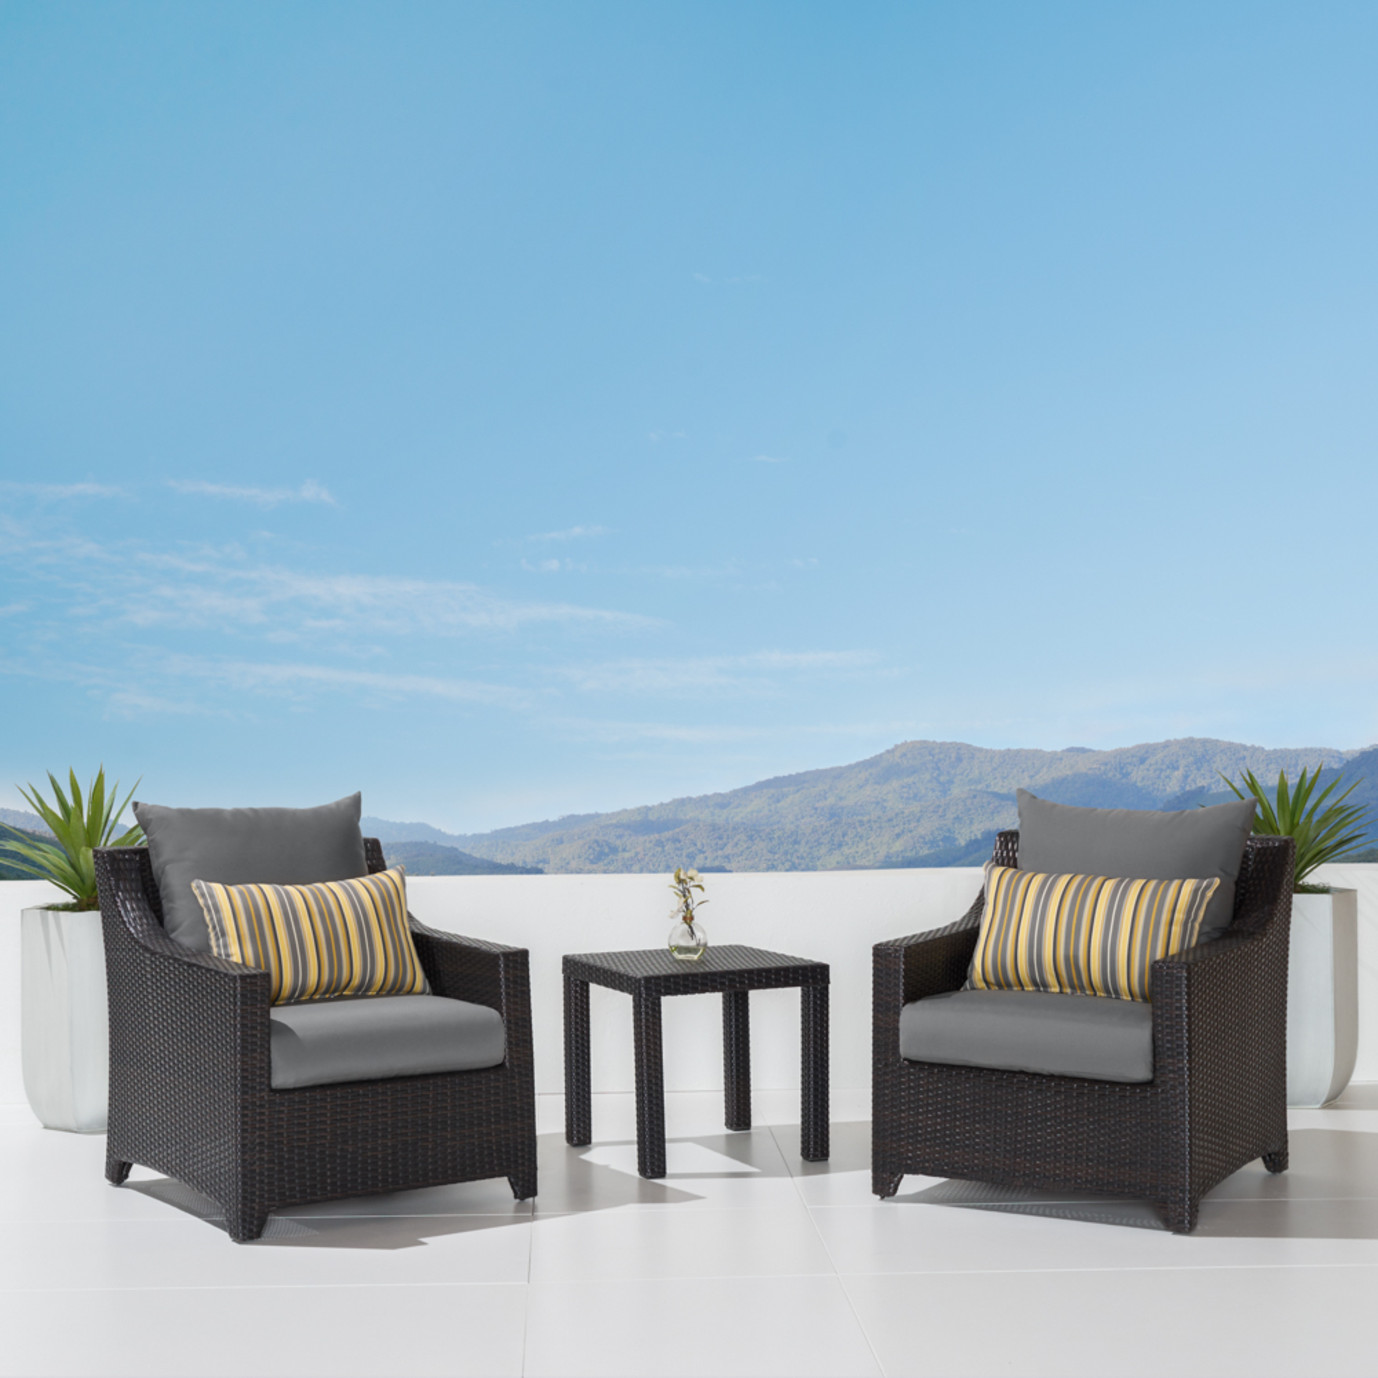 Deco™ Club Chairs and Side Table - Charcoal Grey